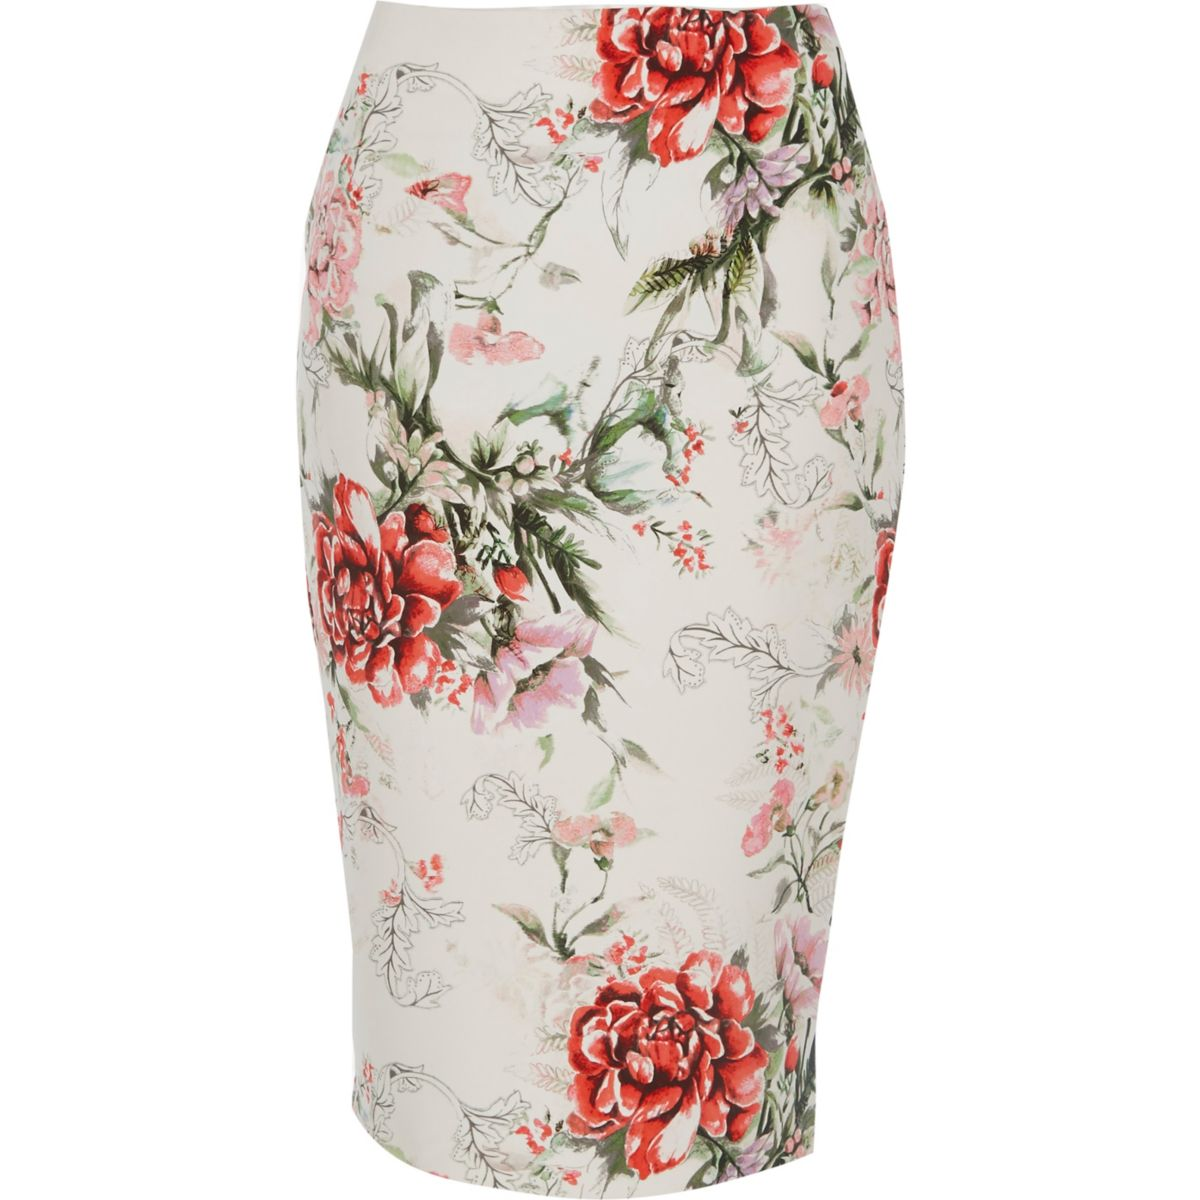 Cream floral print pencil midi skirt